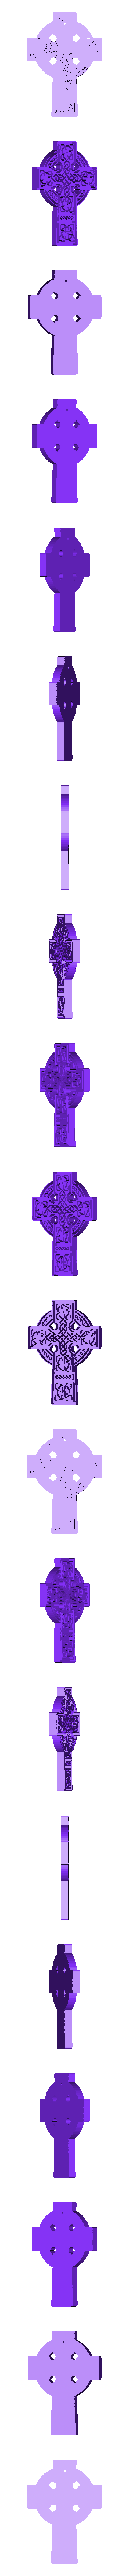 Croix celte2.stl Download free STL file CELTE CROSS Model 2 • 3D printing model, oasisk